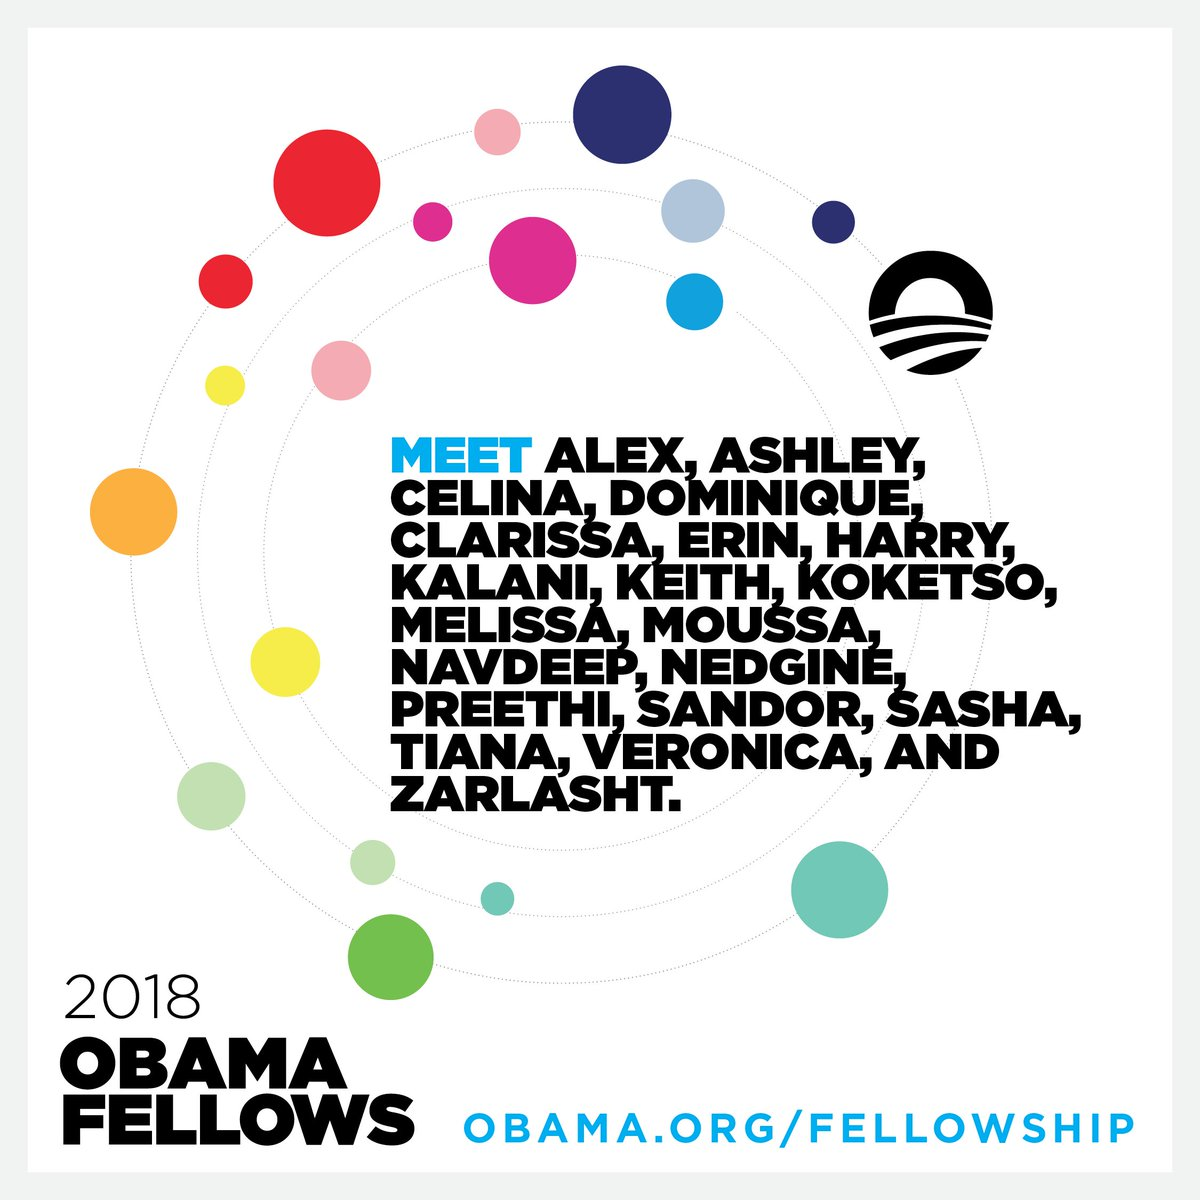 We just announced the inaugural class of #ObamaFellows. These 20 civic leaders have carried out inspiring work around the world. Now, they'll come together to collaborate, exchange ideas, and inspire a wave of civic innovation. Meet the Fellows: obama.org/fellowship/201…